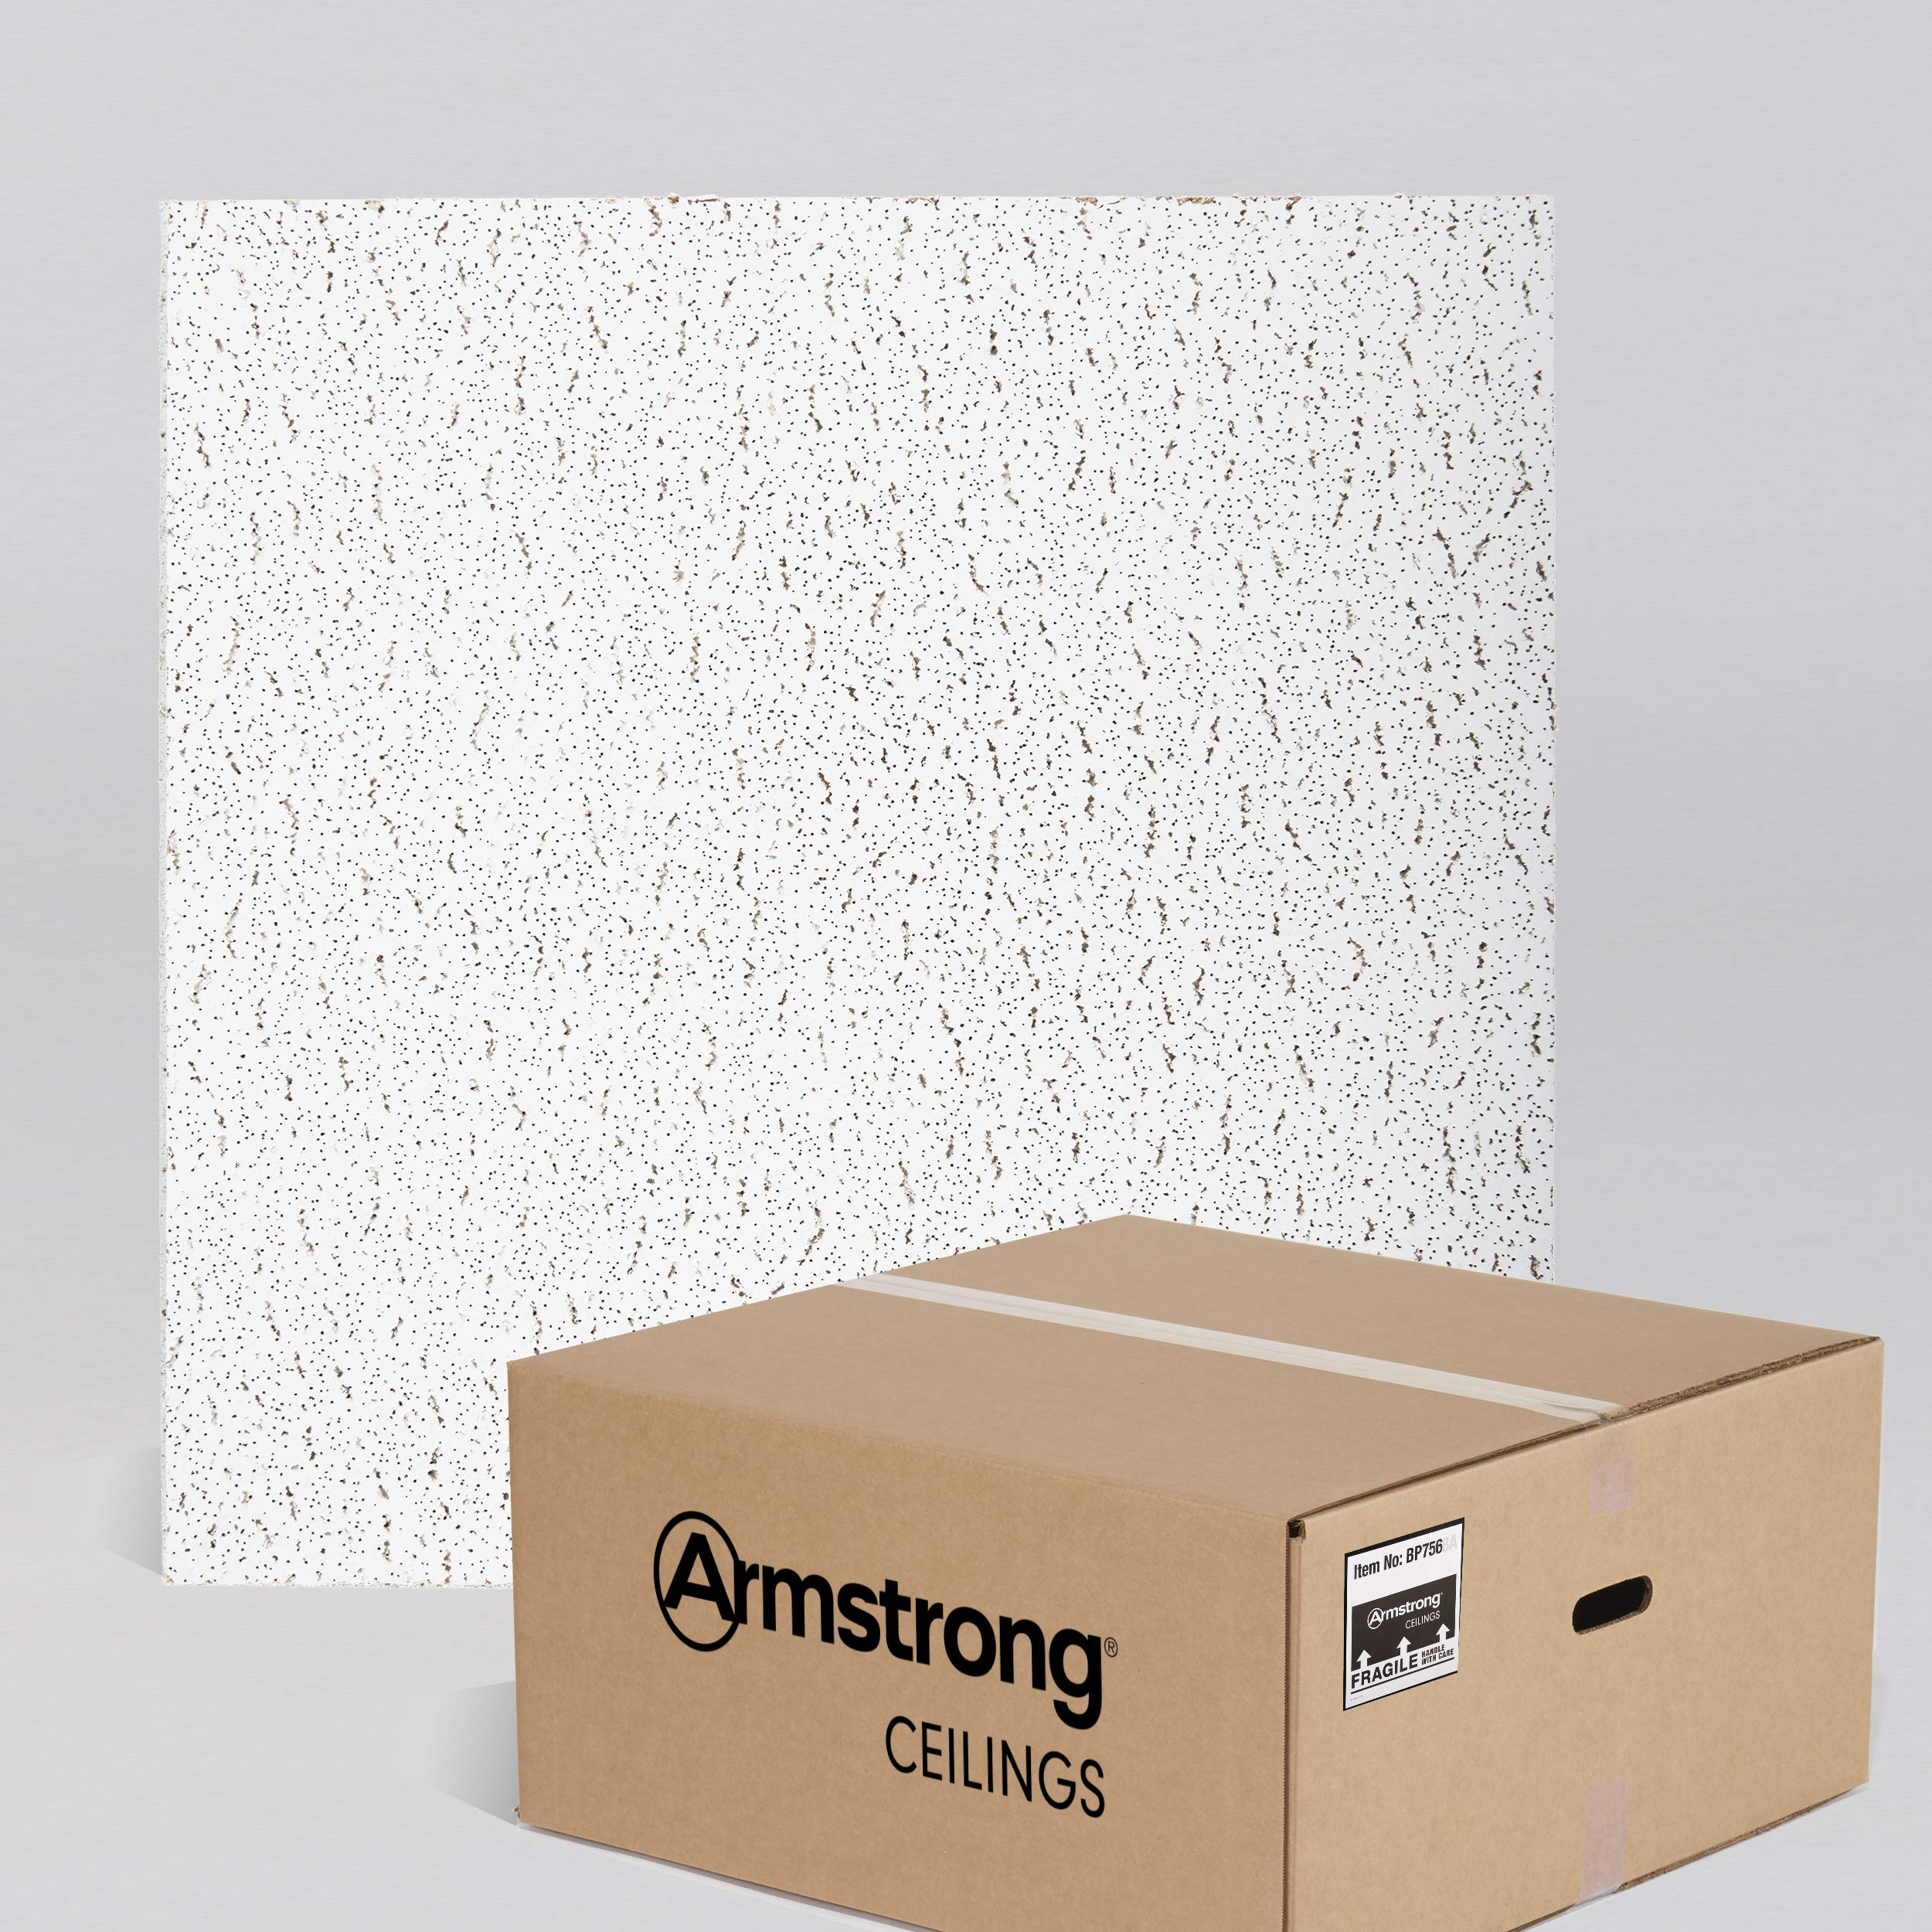 Armstrong Ceiling Tiles; 2x2 Ceiling Tiles - Acoustic Ceilings for Suspended Ceiling Grid; Drop Ceiling Tiles Direct from the Manufacturer; FISSURED Item 756 - 16 pcs White Lay-in